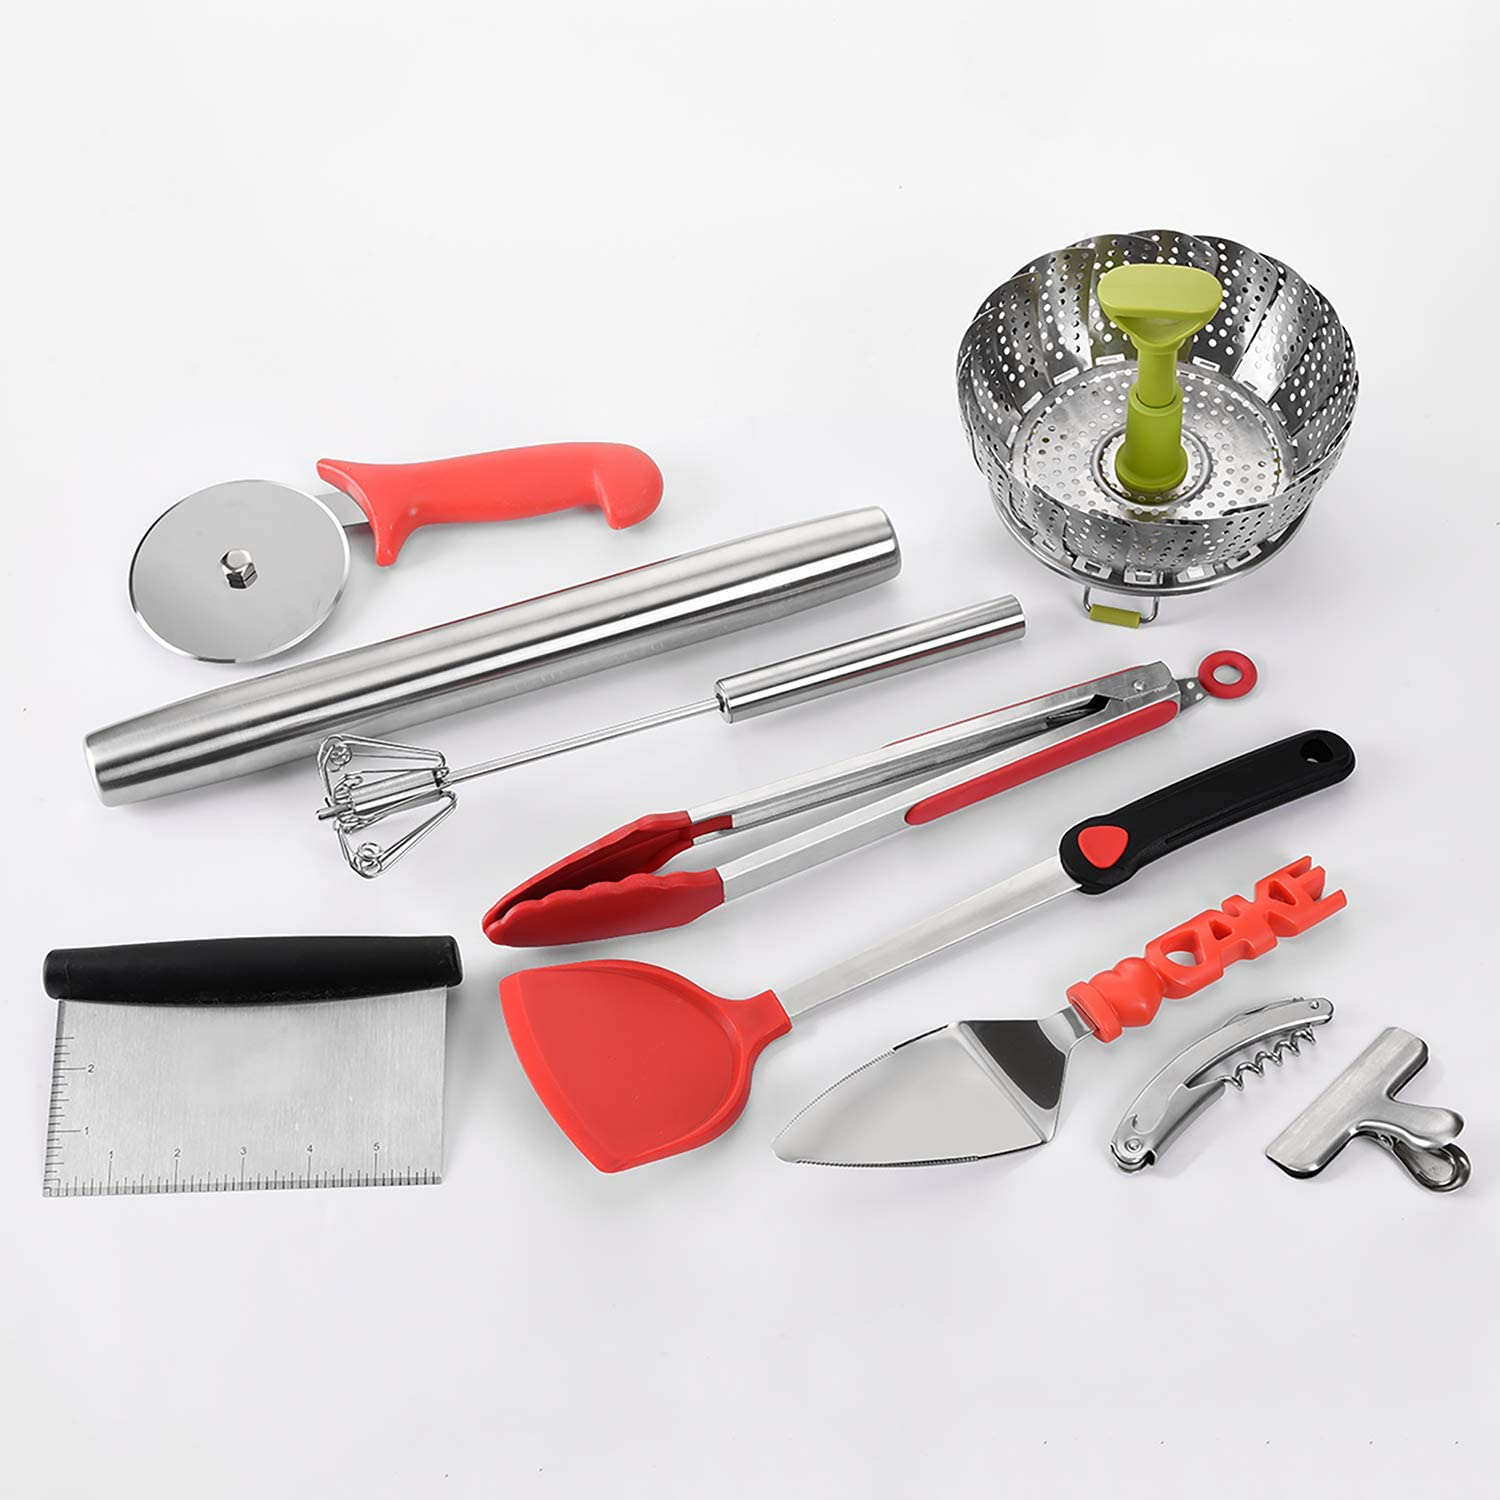 Kitchen Utensils Cooking Tools/of 10 Piece Stainless Steel Kitchen Utensil Set/,Cooking Utensils FDA Approved and BPA Free